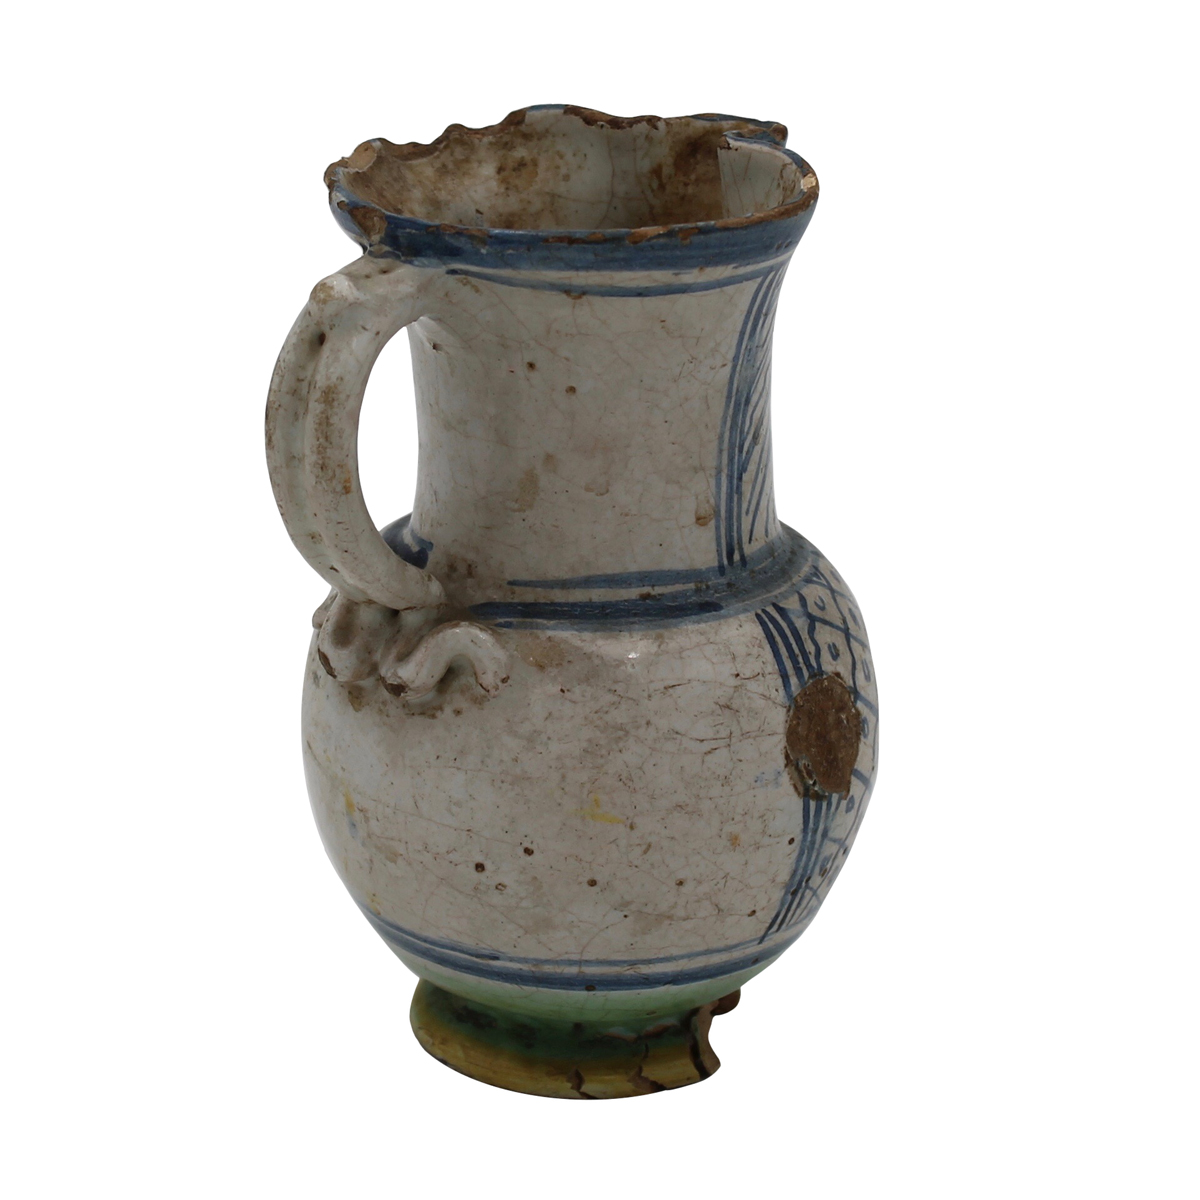 PICCOLA BROCCA - SMALL PITCHER - Image 2 of 2